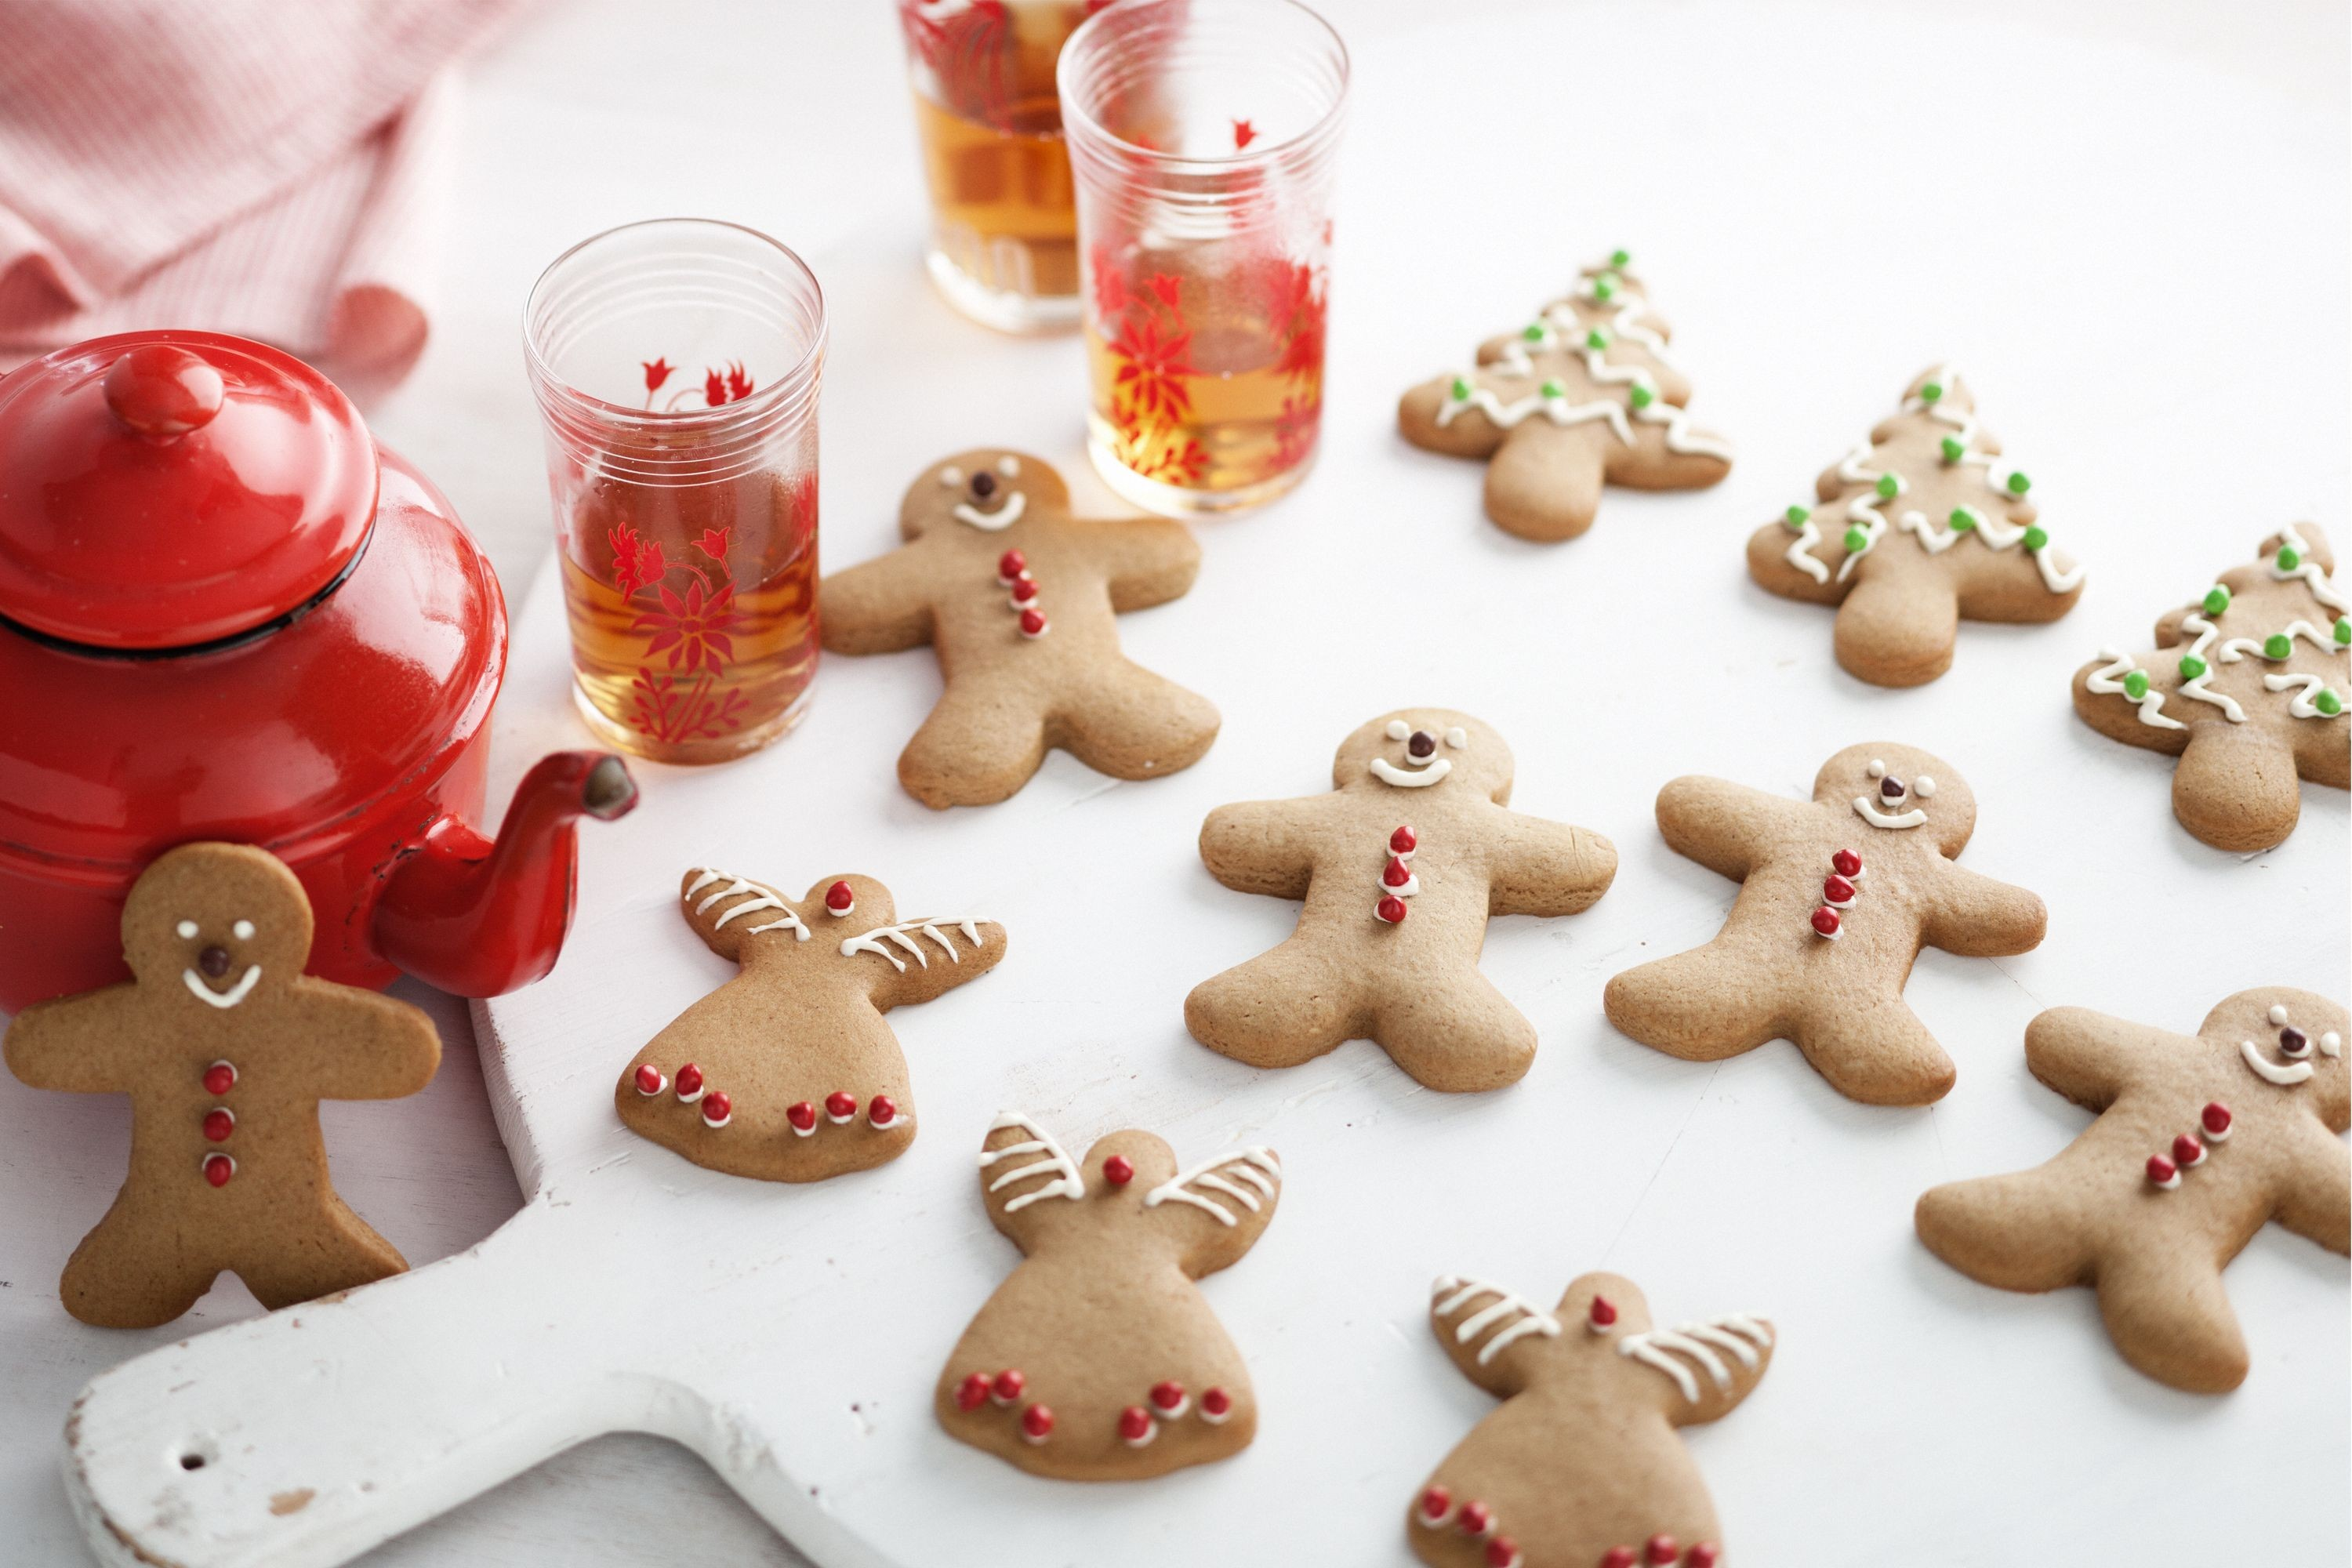 Traditional Christmas gingerbread